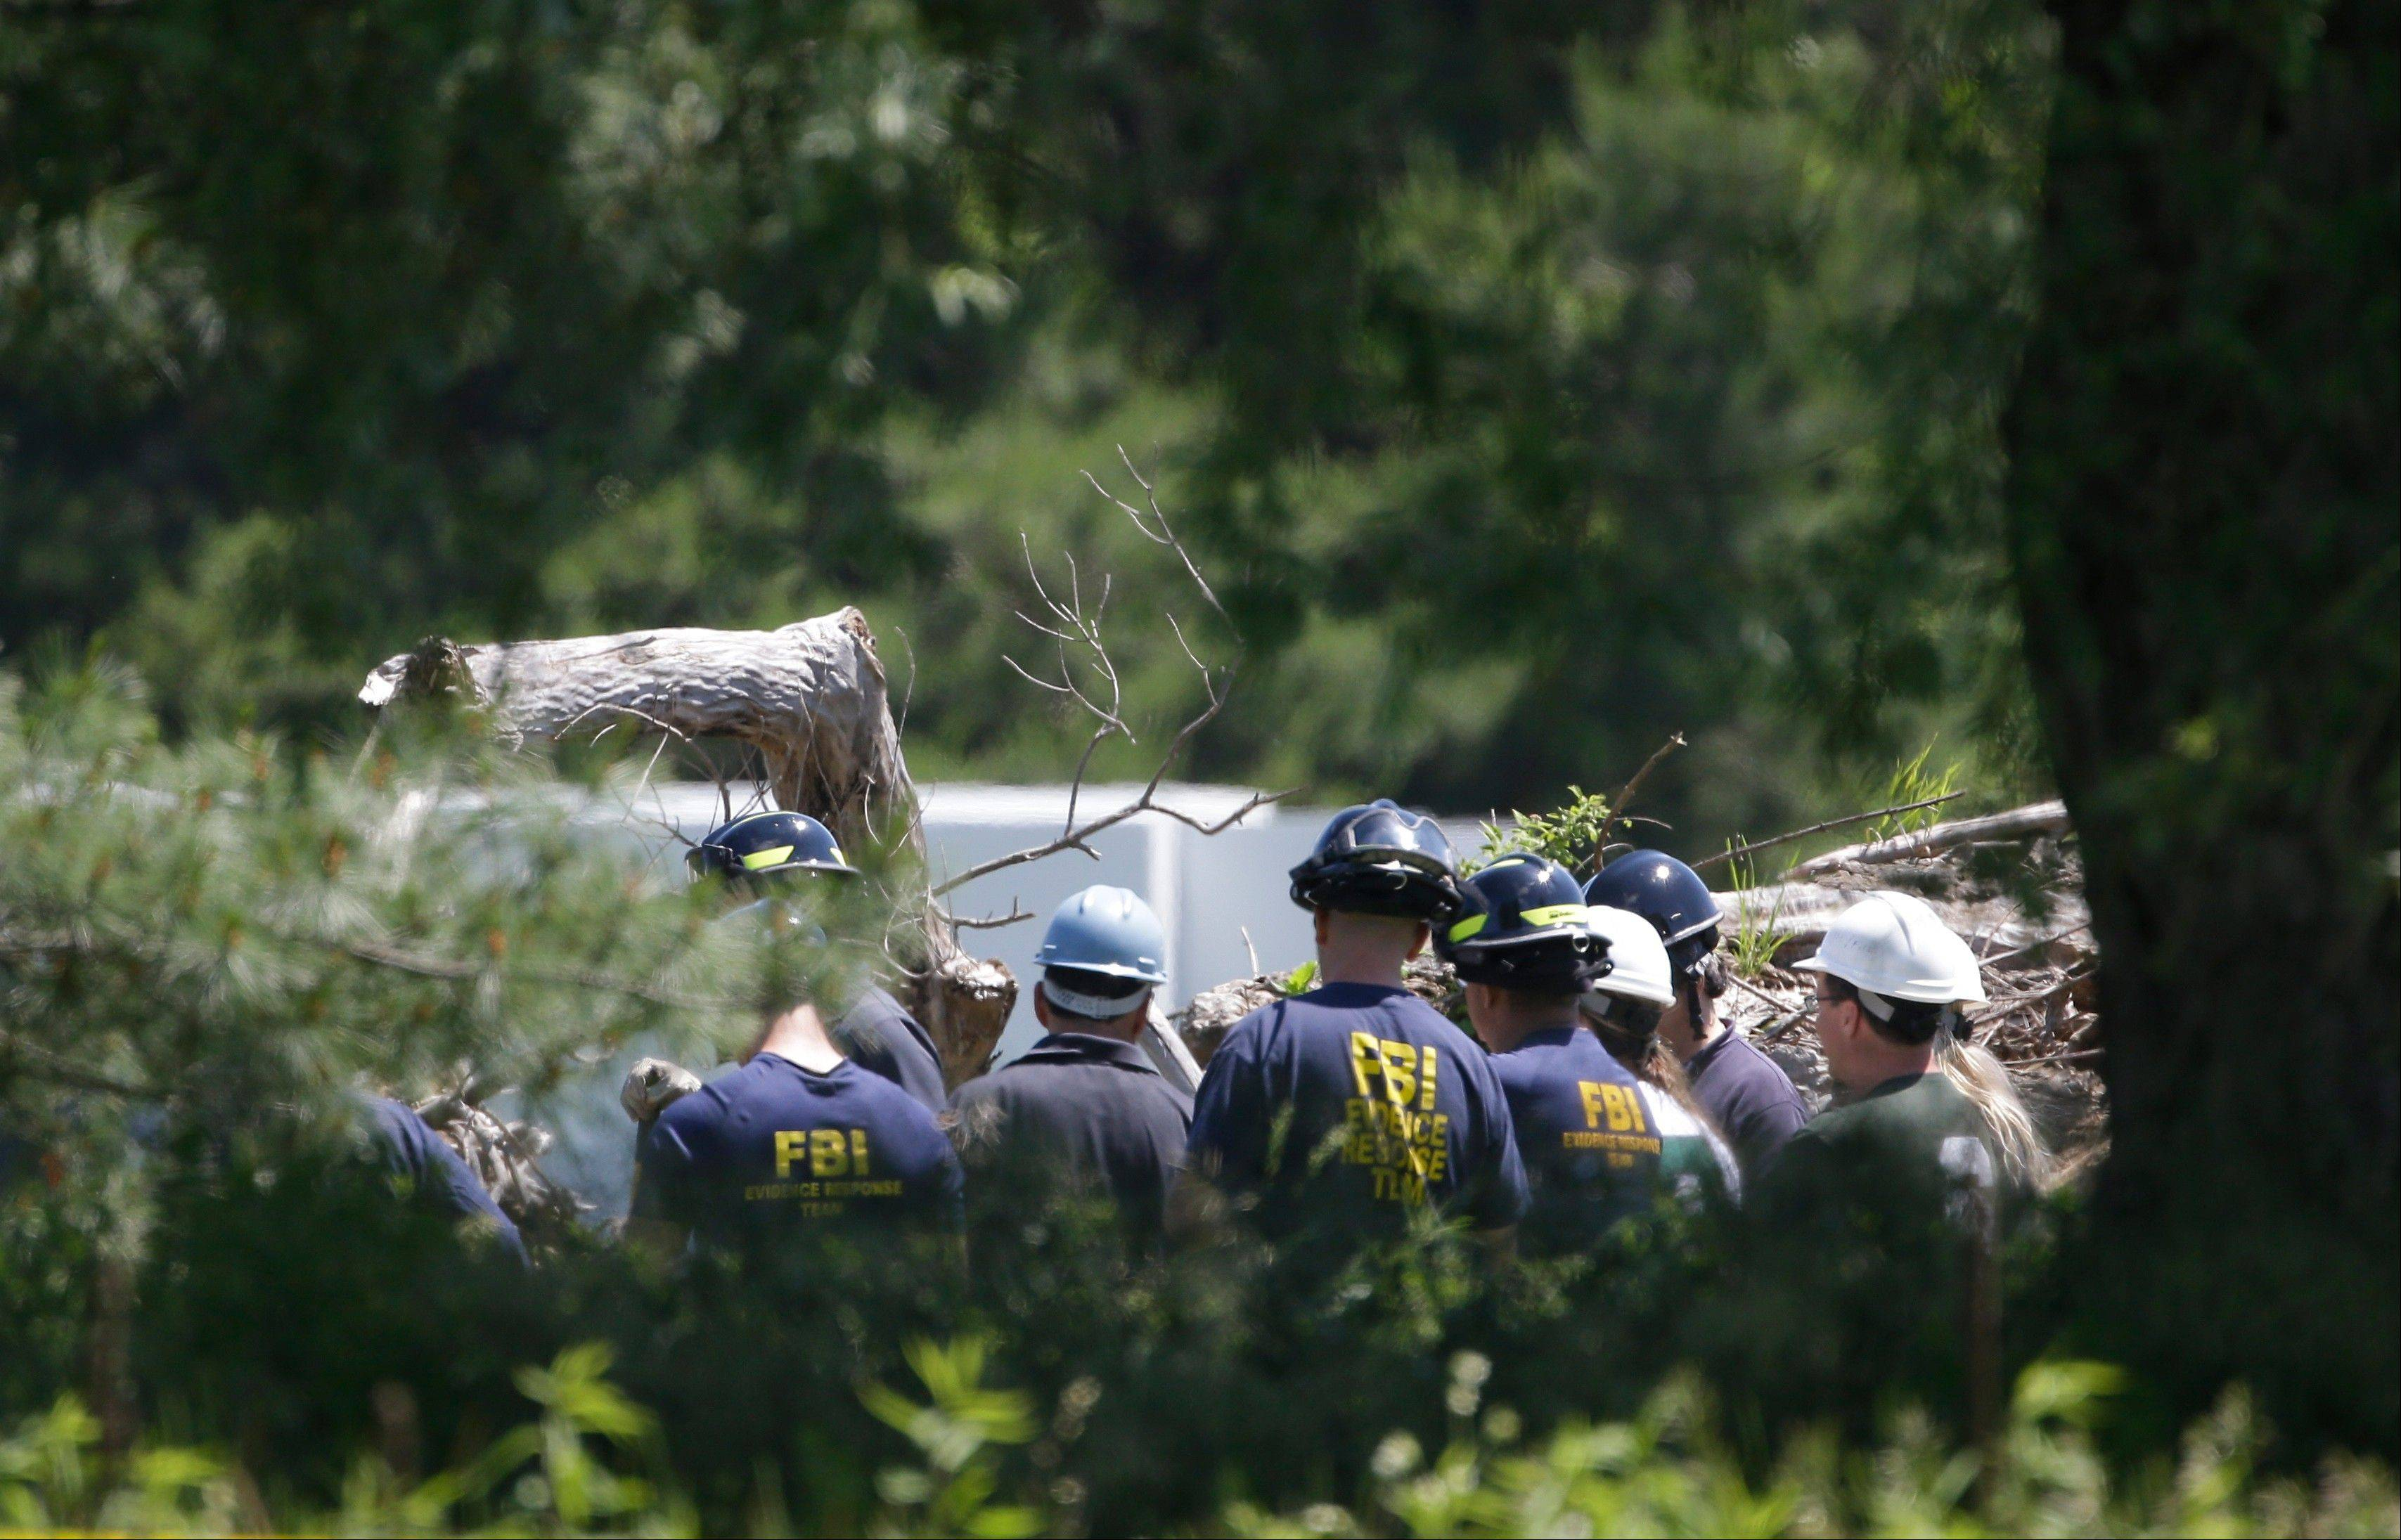 FBI hunt for Hoffa's remains turns up nothing